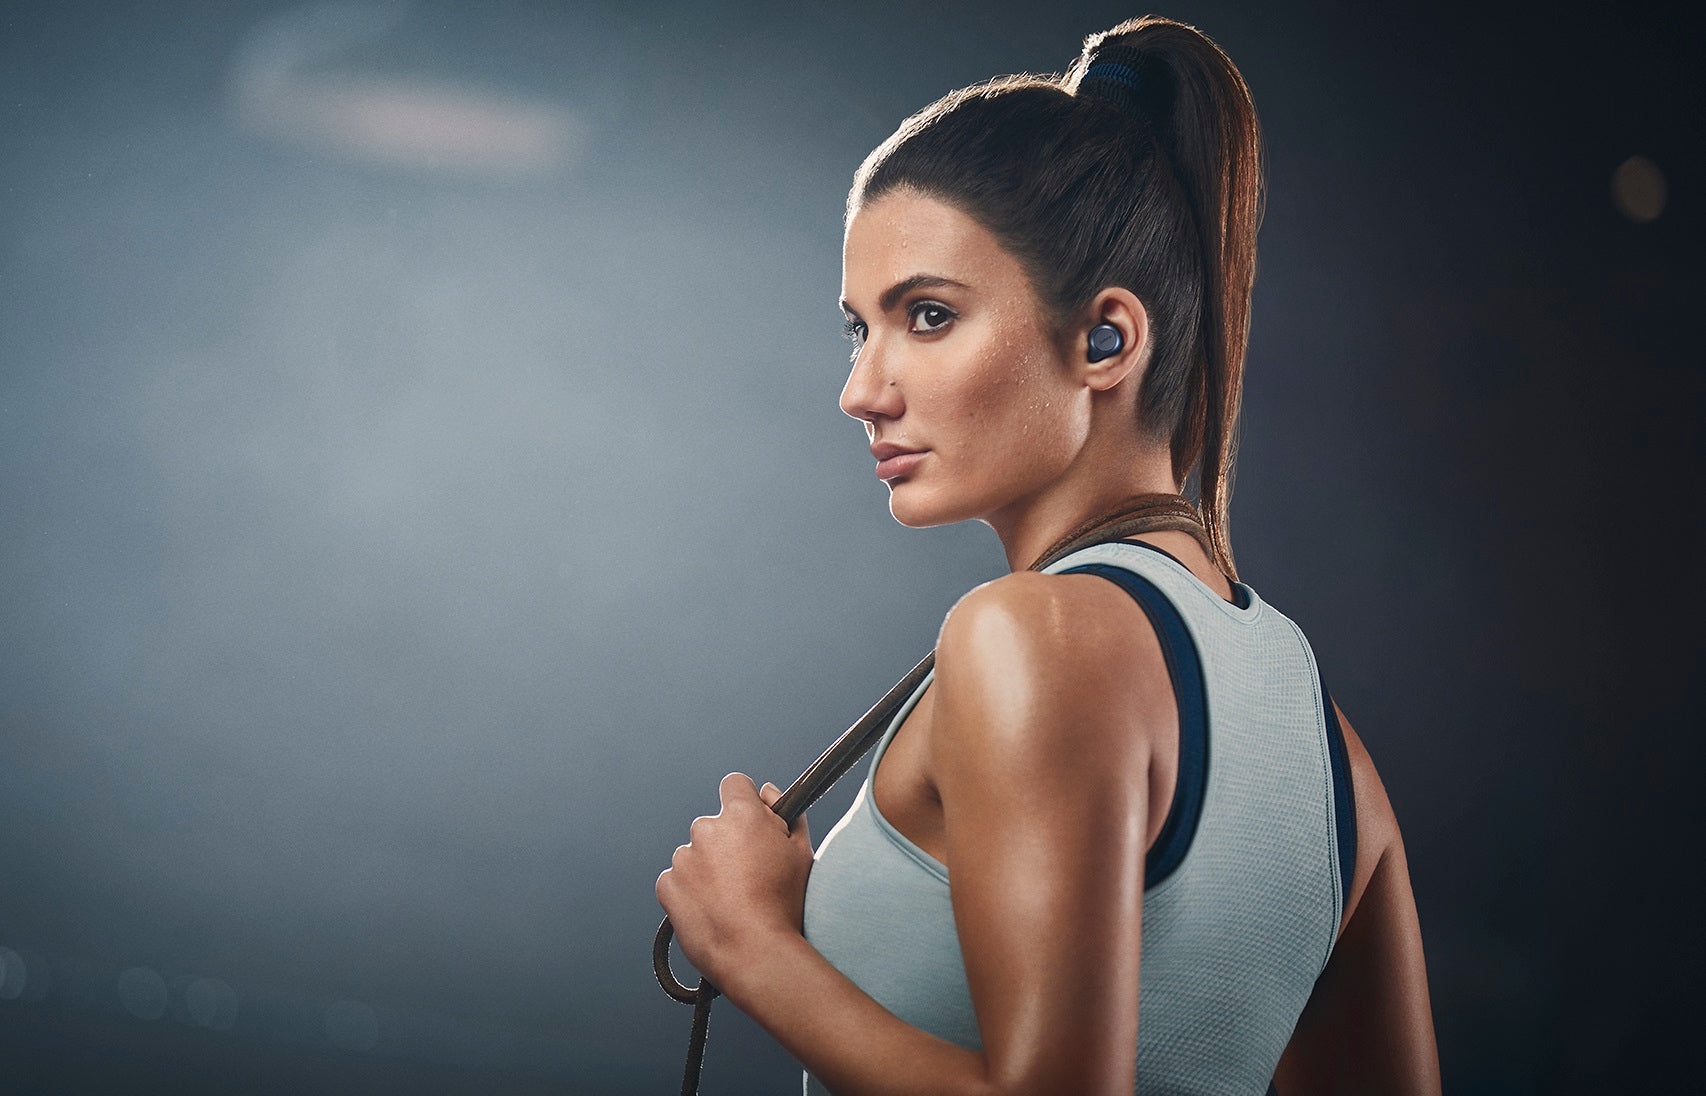 Jabra Elite Active 75t True Wireless Earbuds for Active Lifestyle - Female Model in sports gear looking back